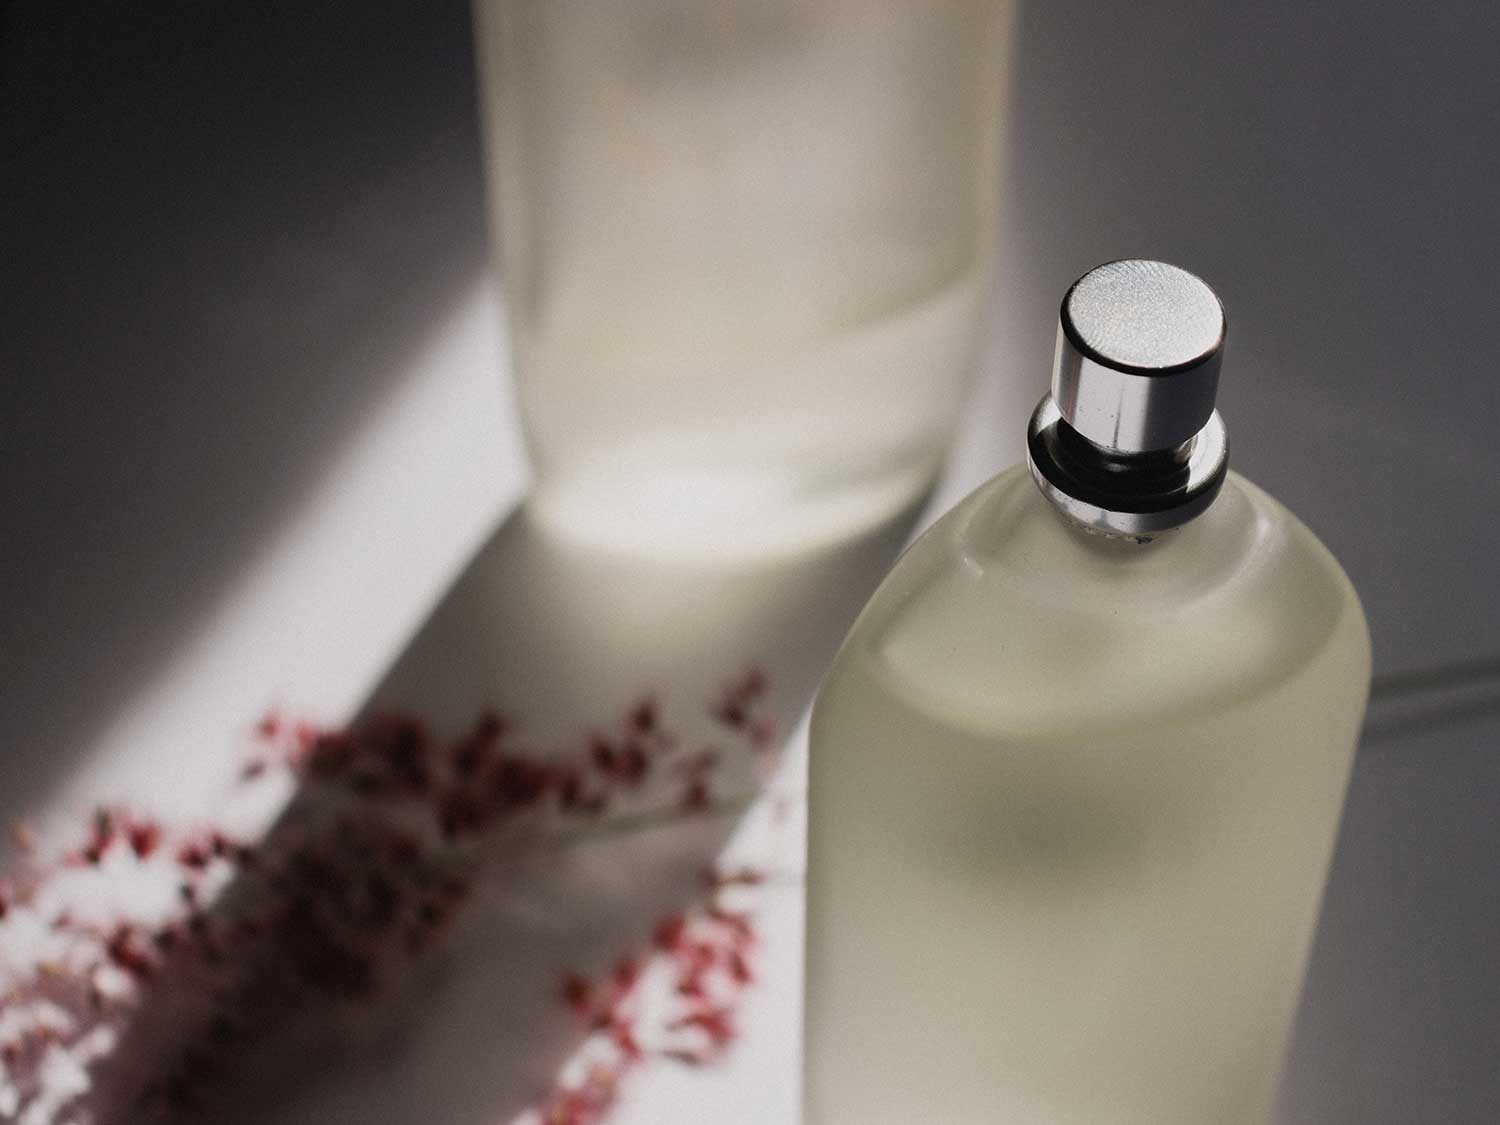 Home fragrance sprays in glass bottles.